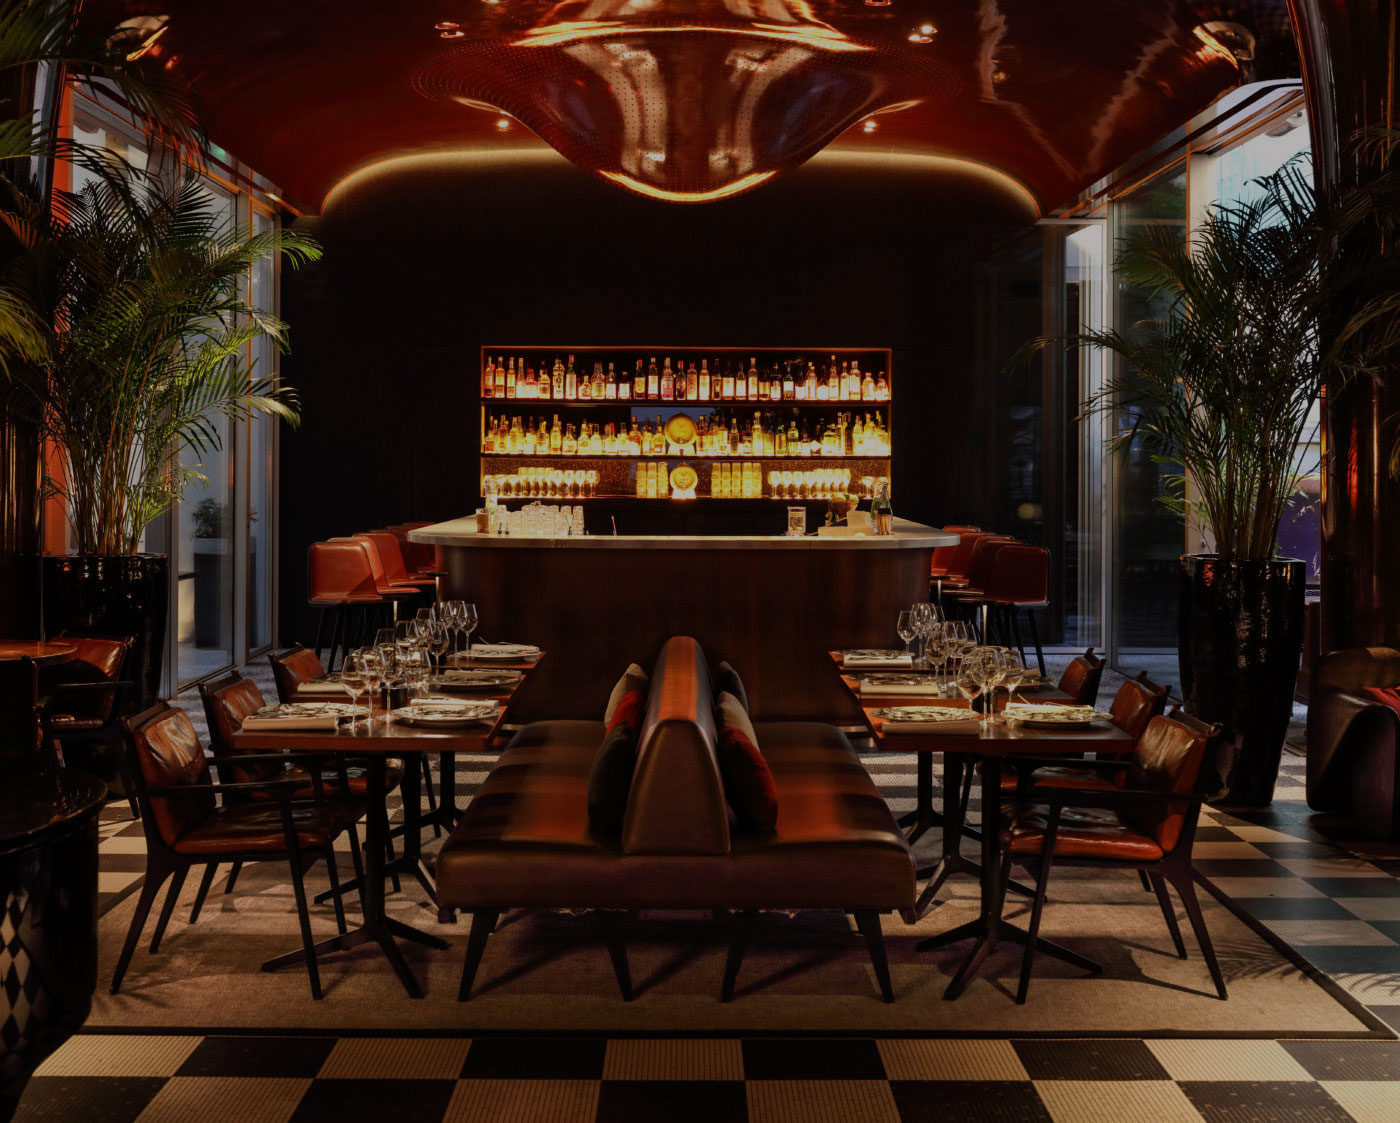 Bar A Manger Hotel Les Bains Les Bains Paris Hotel Paris Luxury Boutique